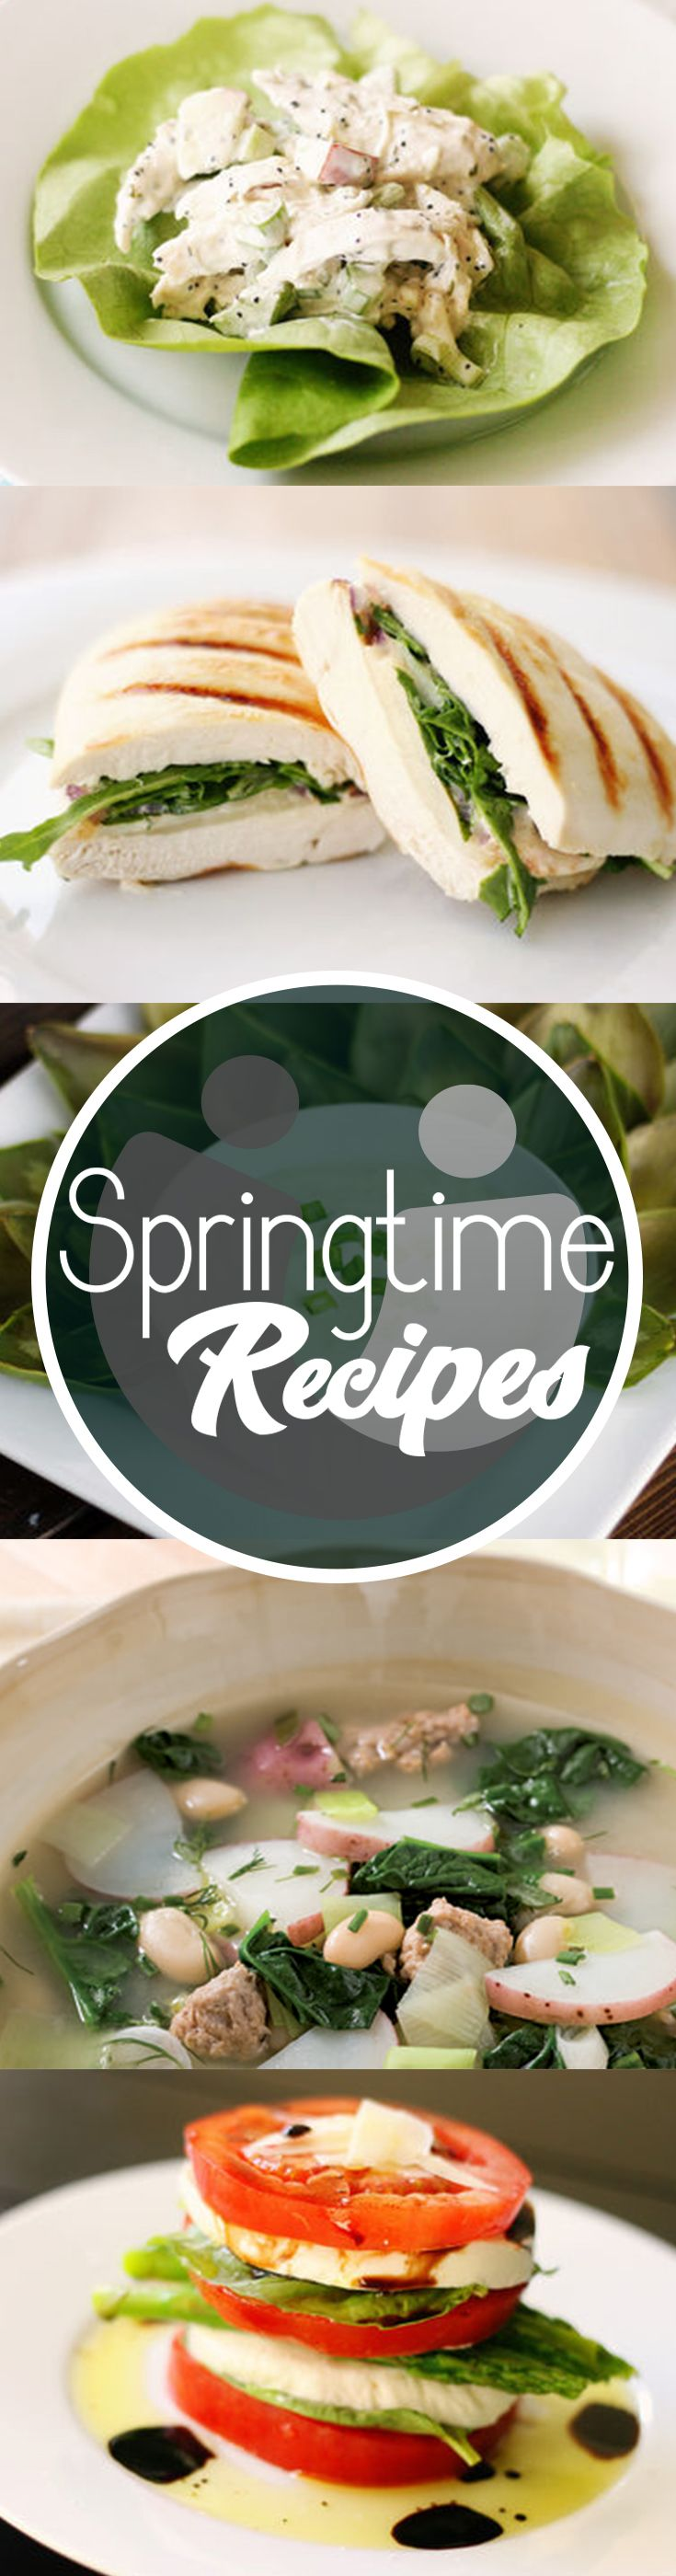 57 best snack recipes diabetic connect images on pinterest 57 best snack recipes diabetic connect images on pinterest diabetic recipes diabetic snacks and kitchens forumfinder Image collections